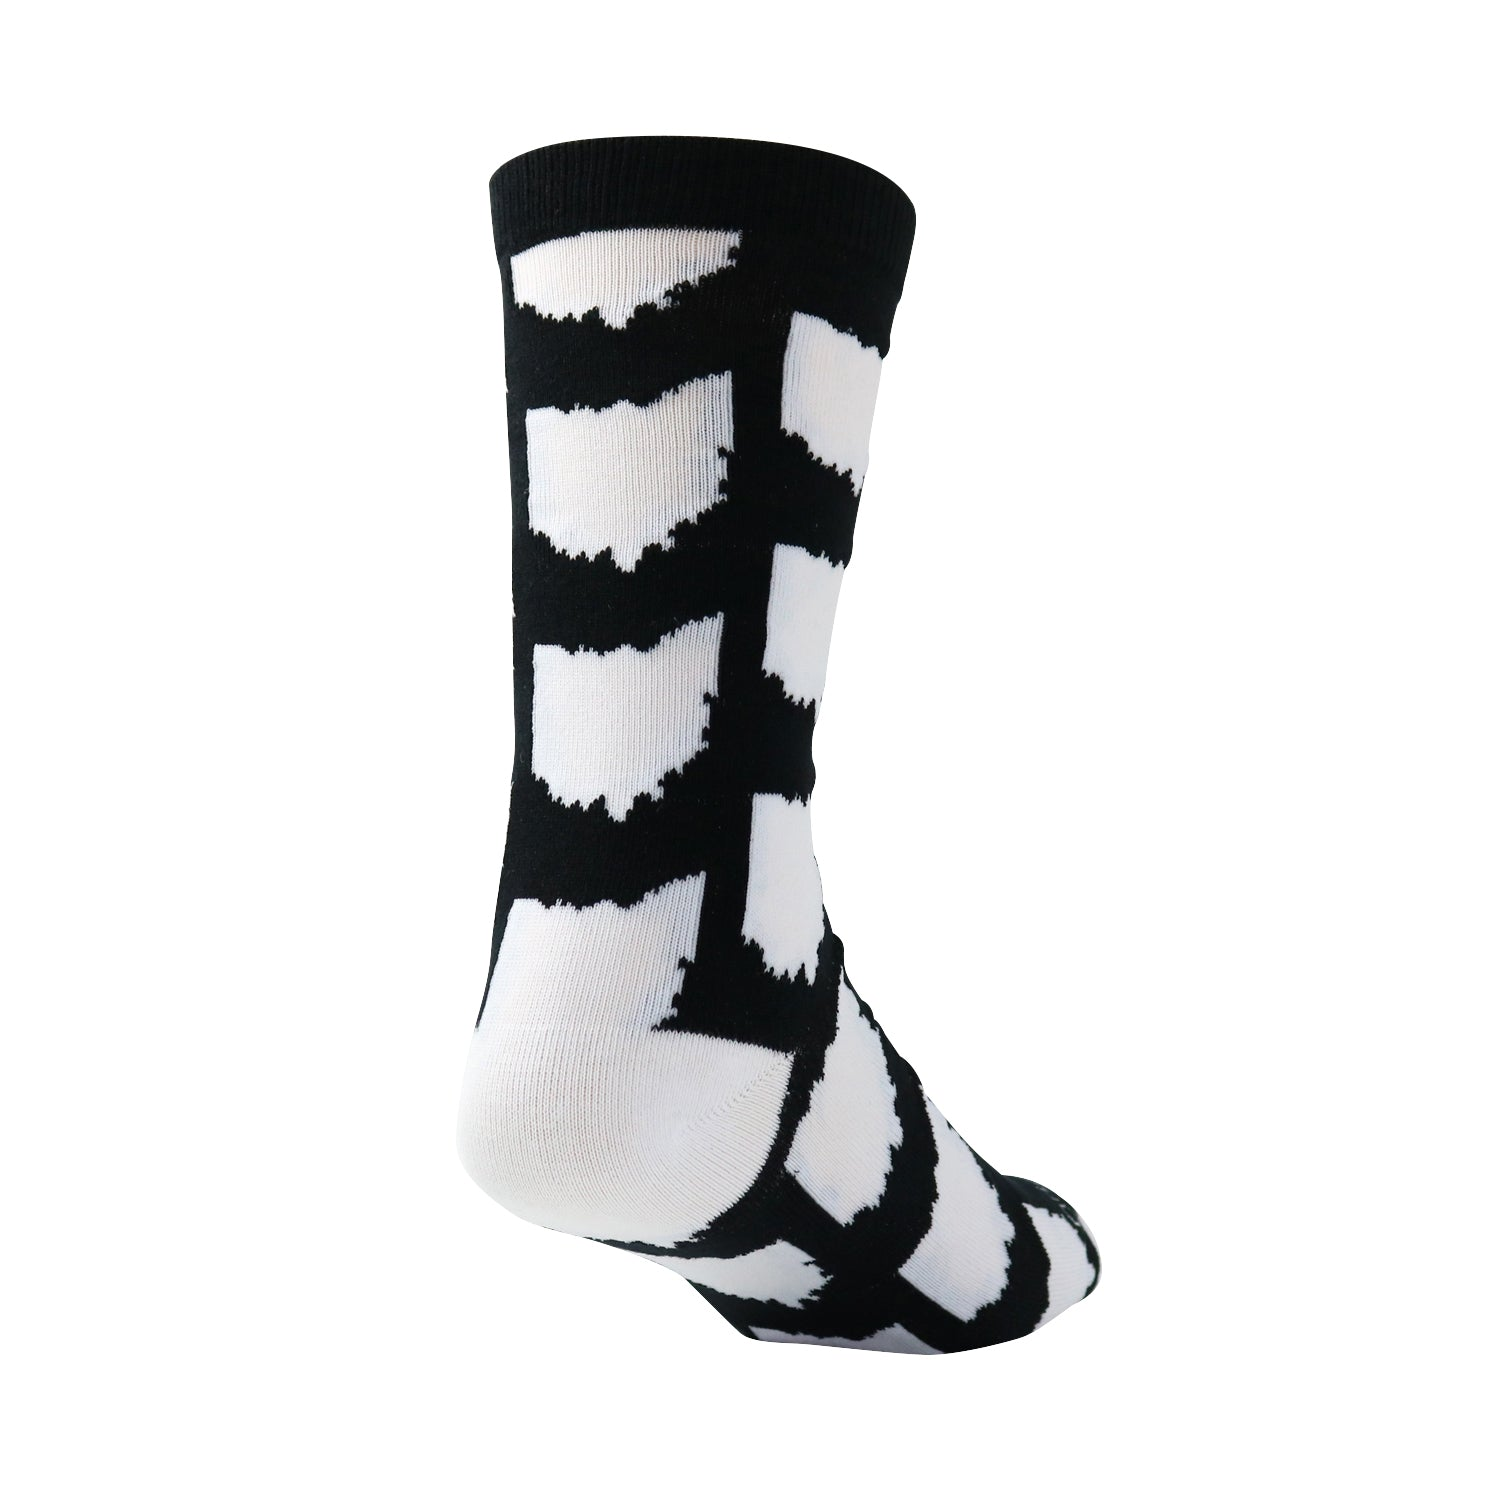 All Over OH Socks - Black/White - Originalitees